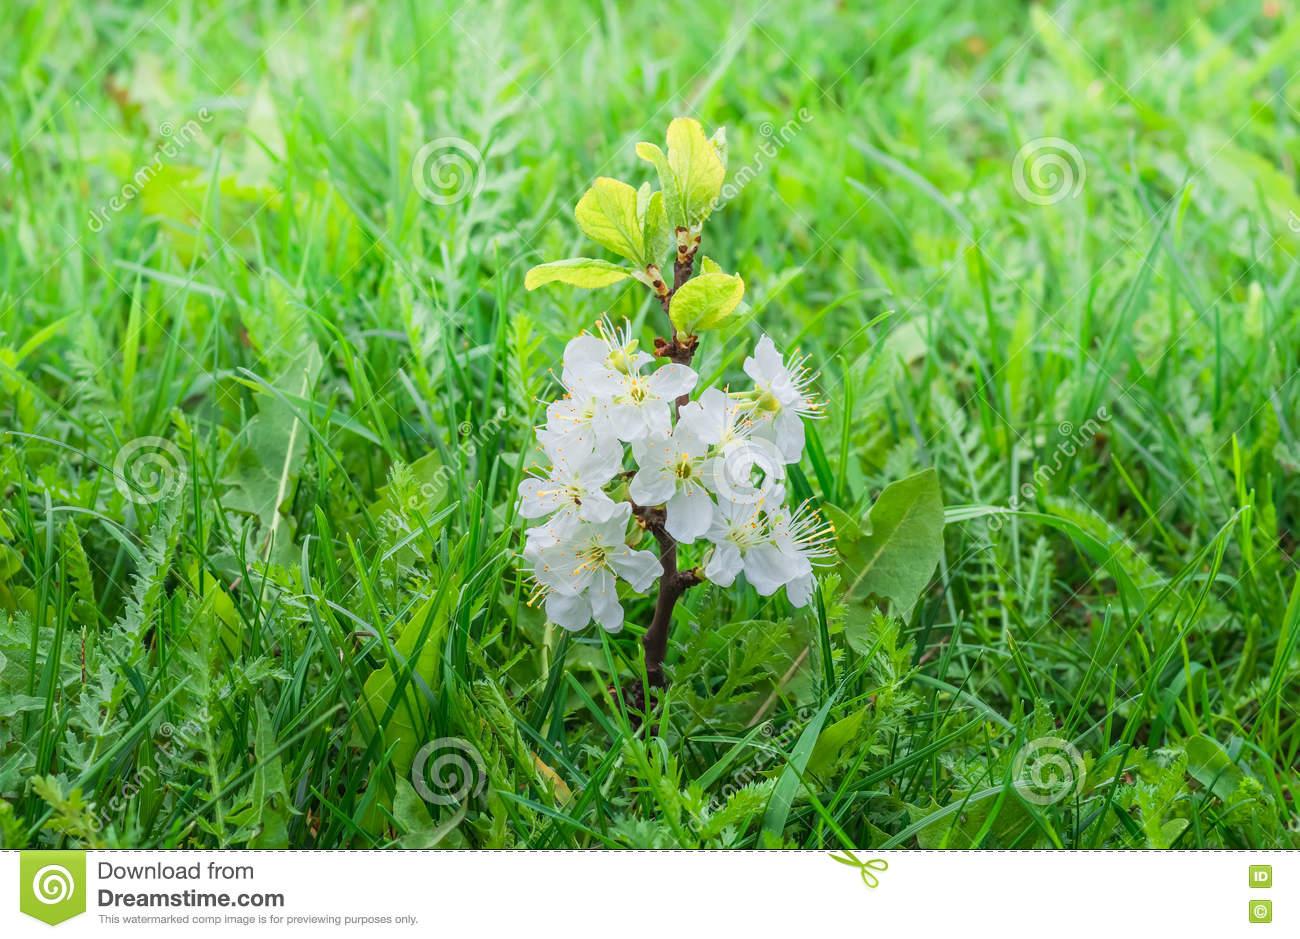 Sprout Plum Tree With Flowers In A Green Grass Stock Photo Image